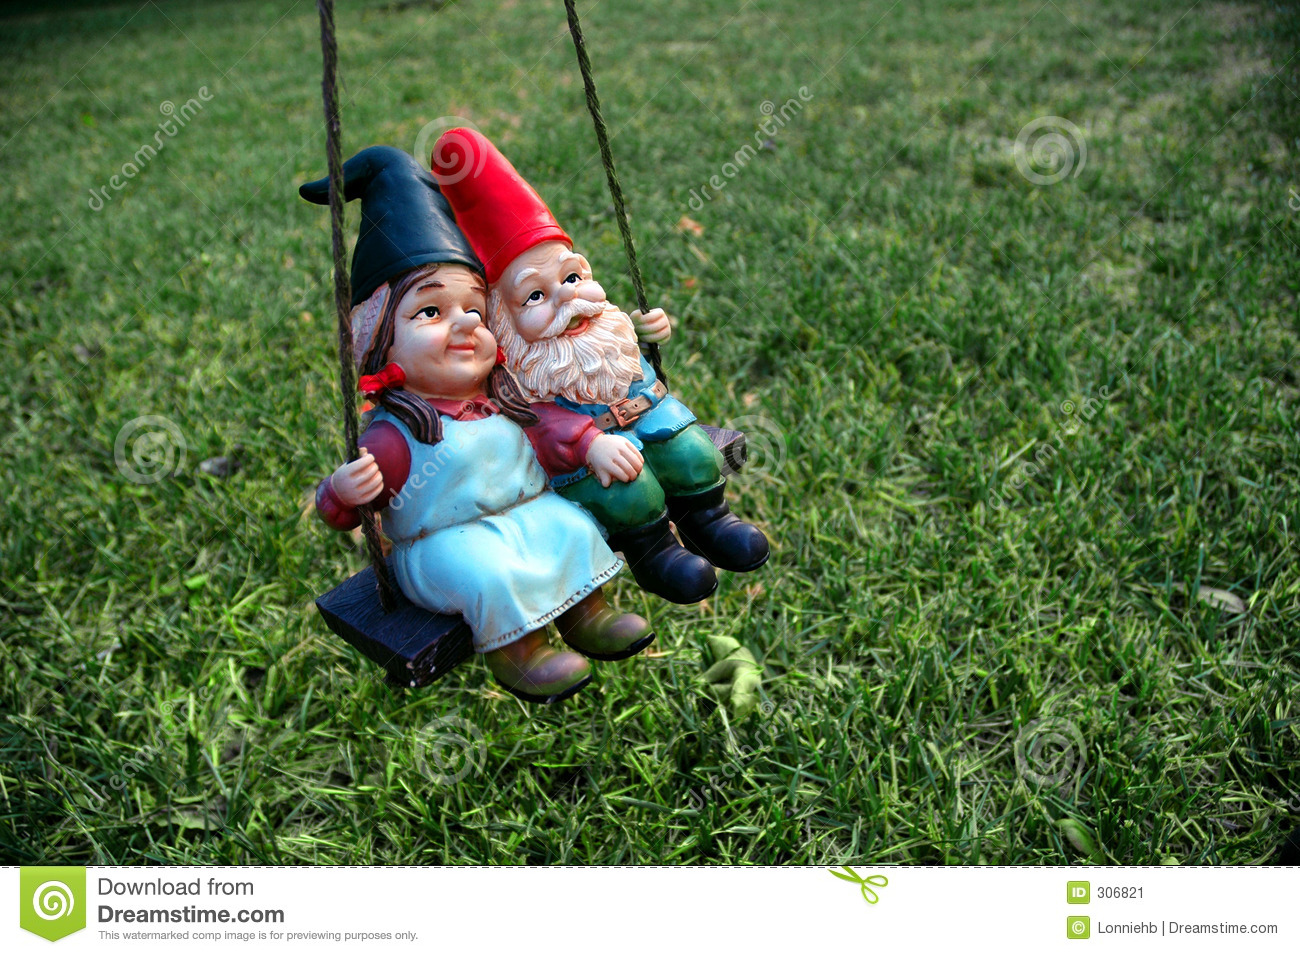 Naked lawn gnome sexual photo